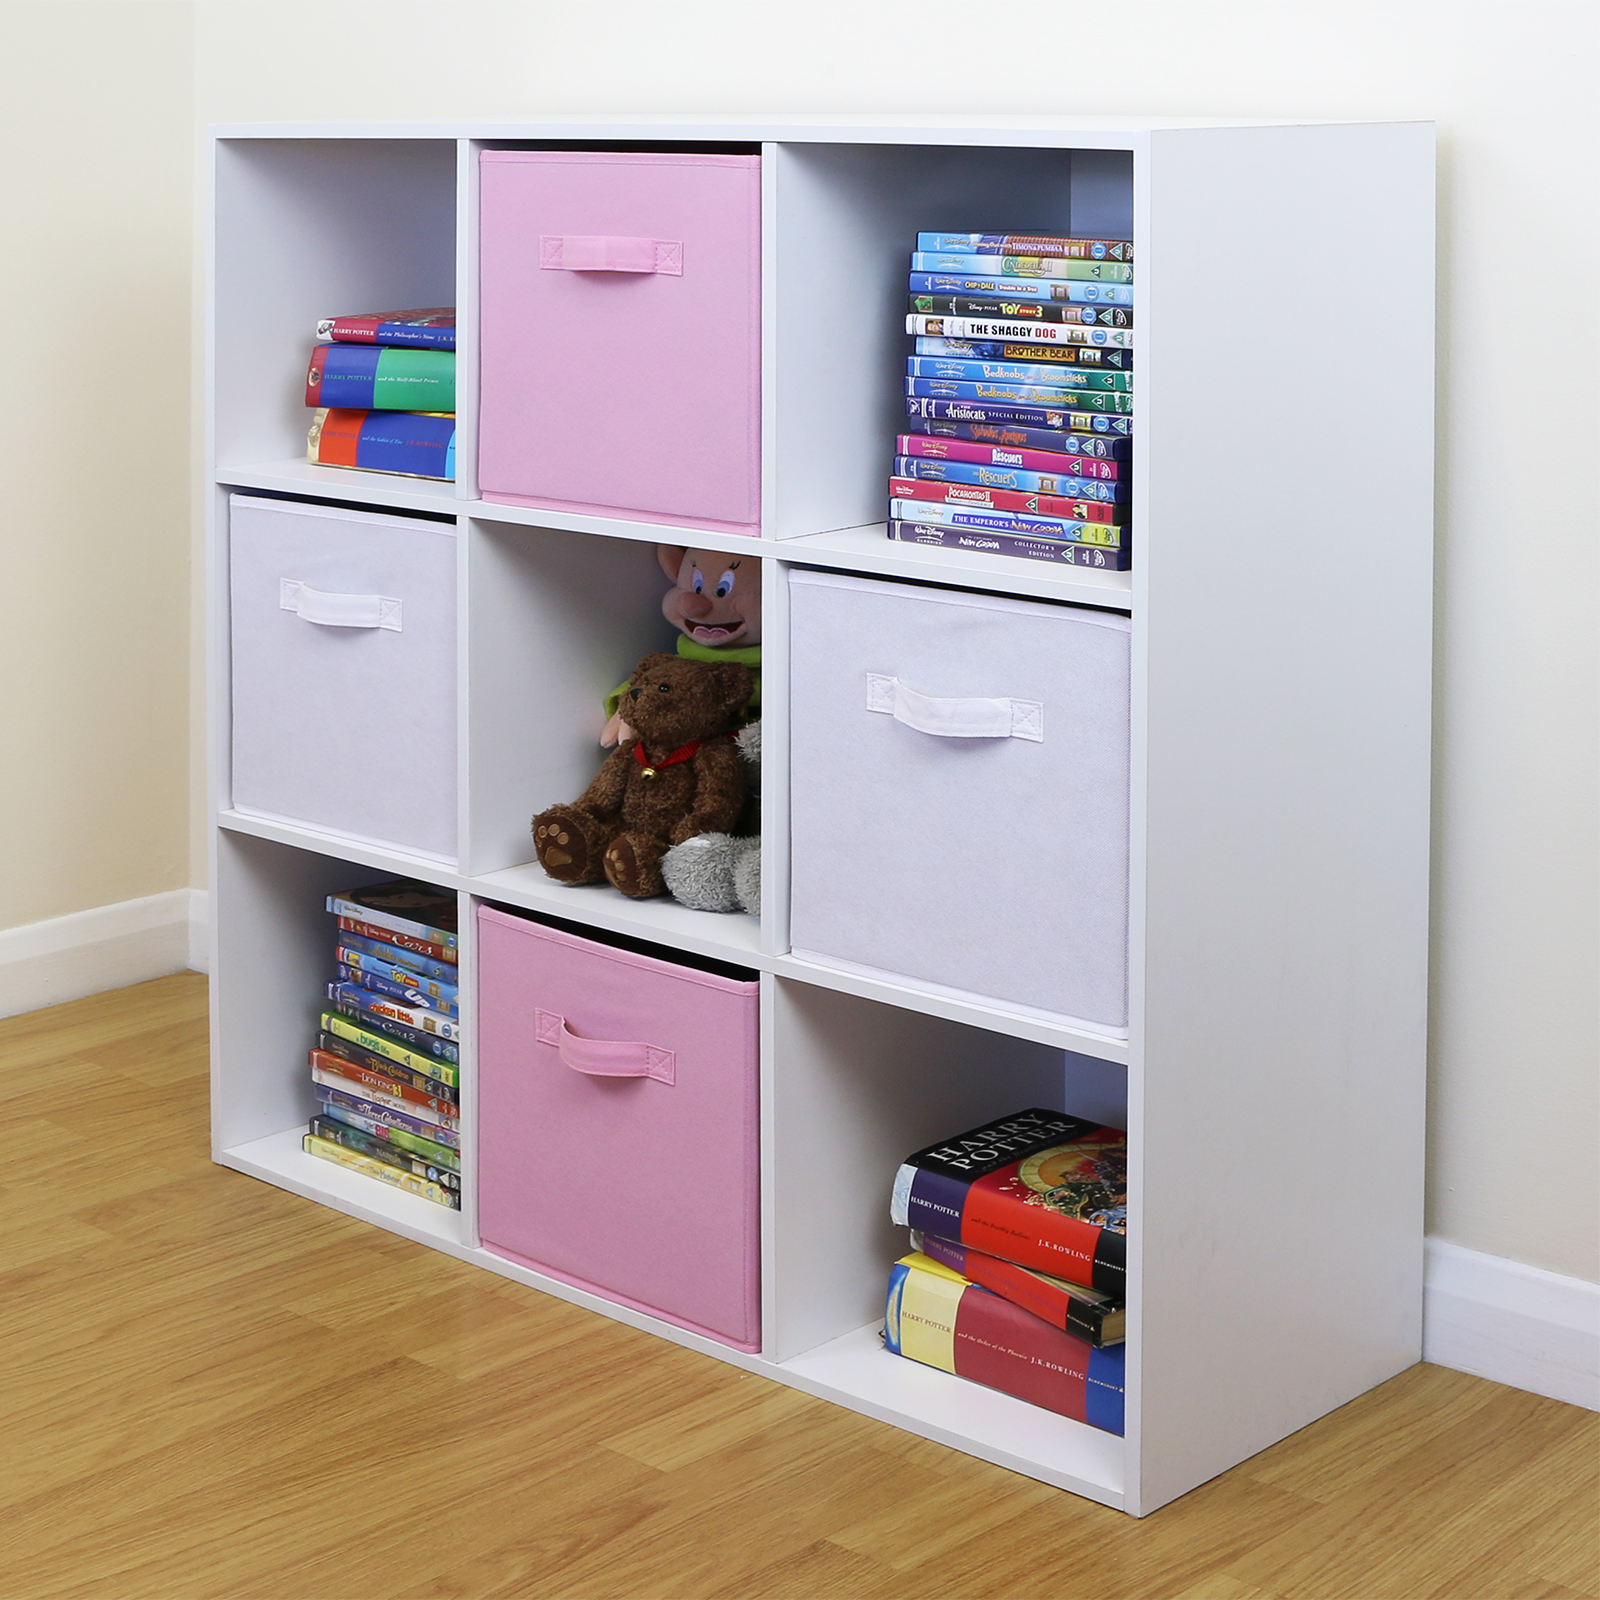 9 Cube Kids Pink White Toy Games Storage Unit Girls Boys Bedroom Rh Ebay Co  Uk Storage Shelves With Baskets Kids Storage Shelves With 4 Bins